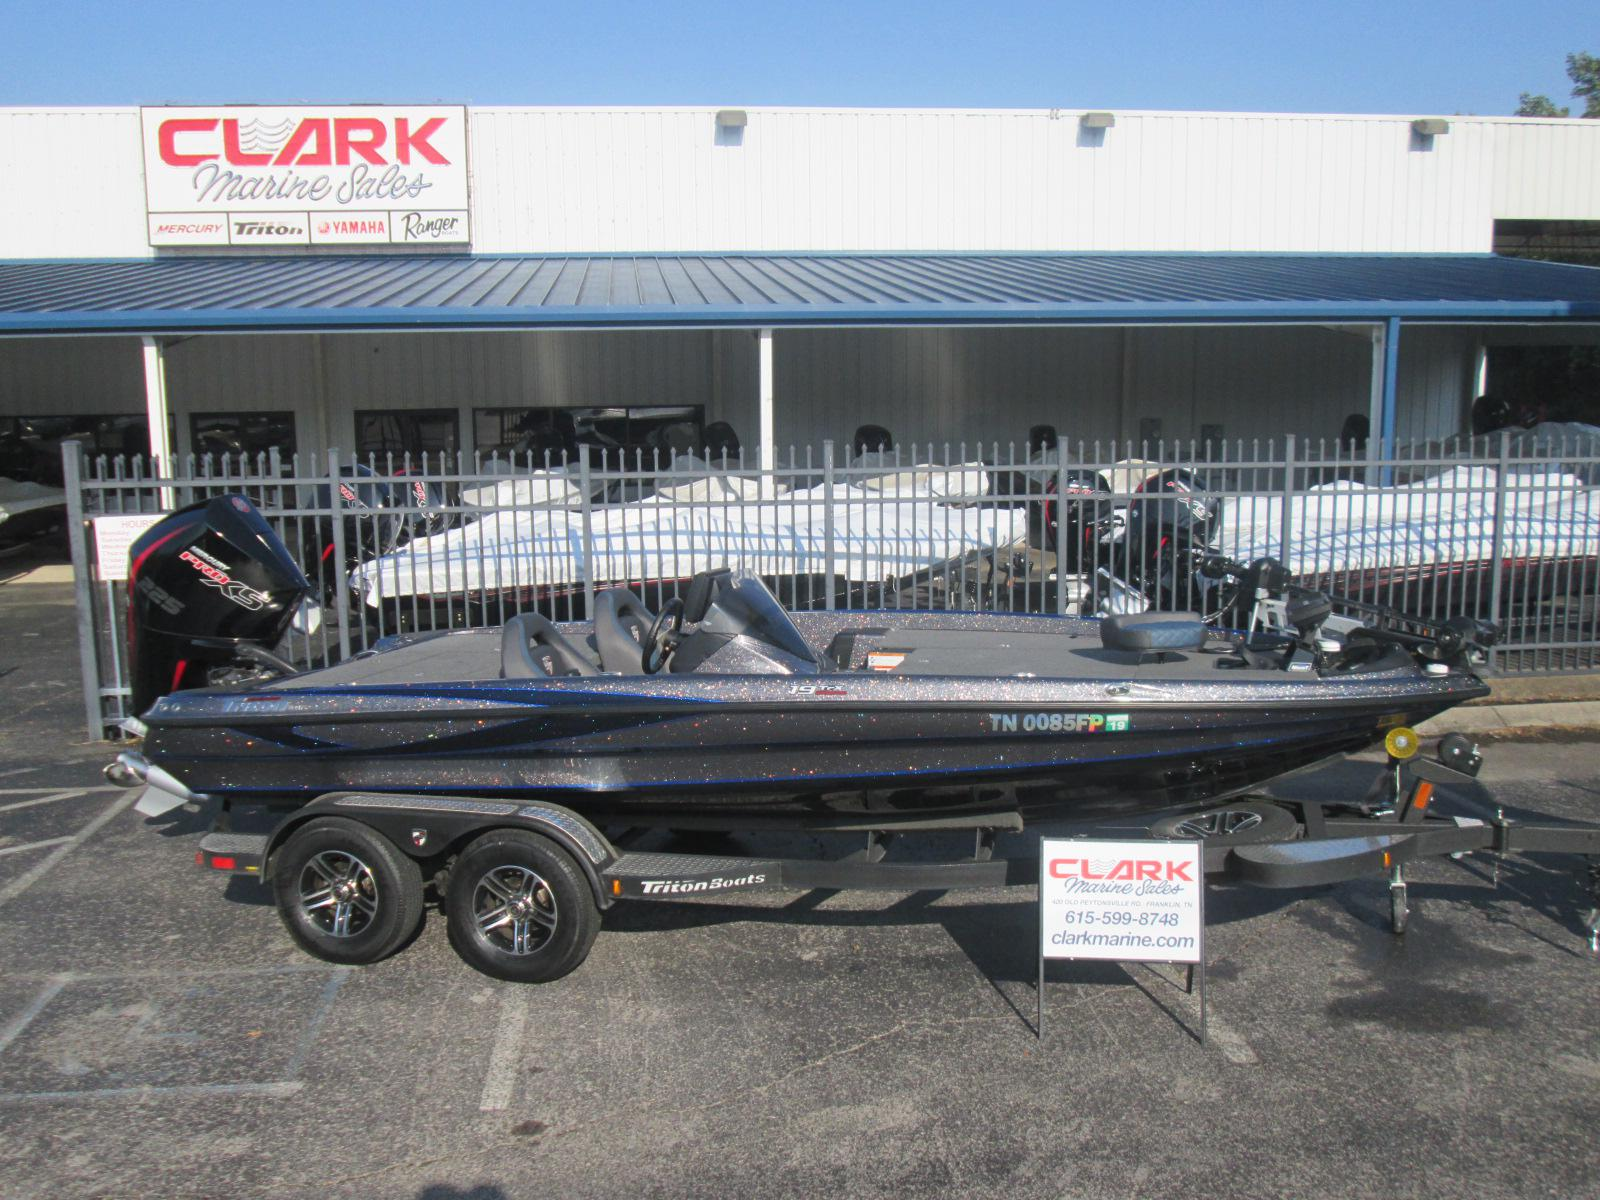 Inventory from Tracker, Twin Vee and Triton Boats Clark